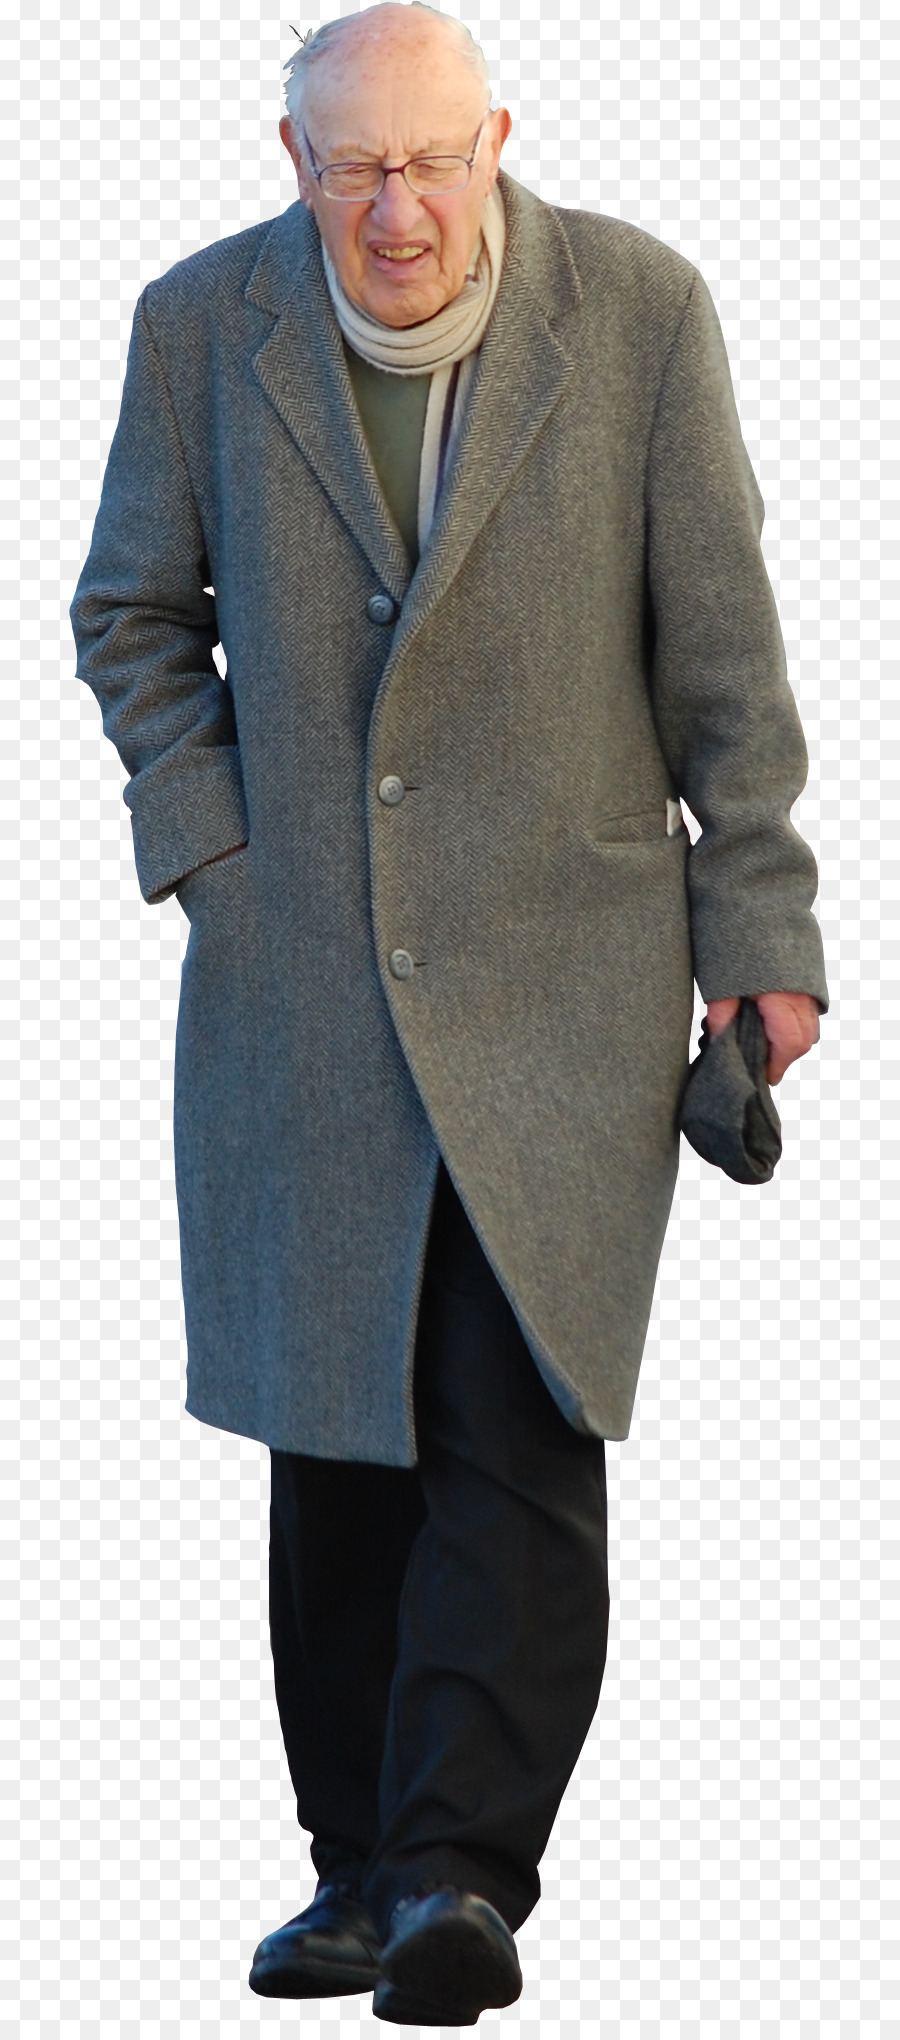 Overcoat Suit Trench coat - OLD MAN - Old Man Standing PNG